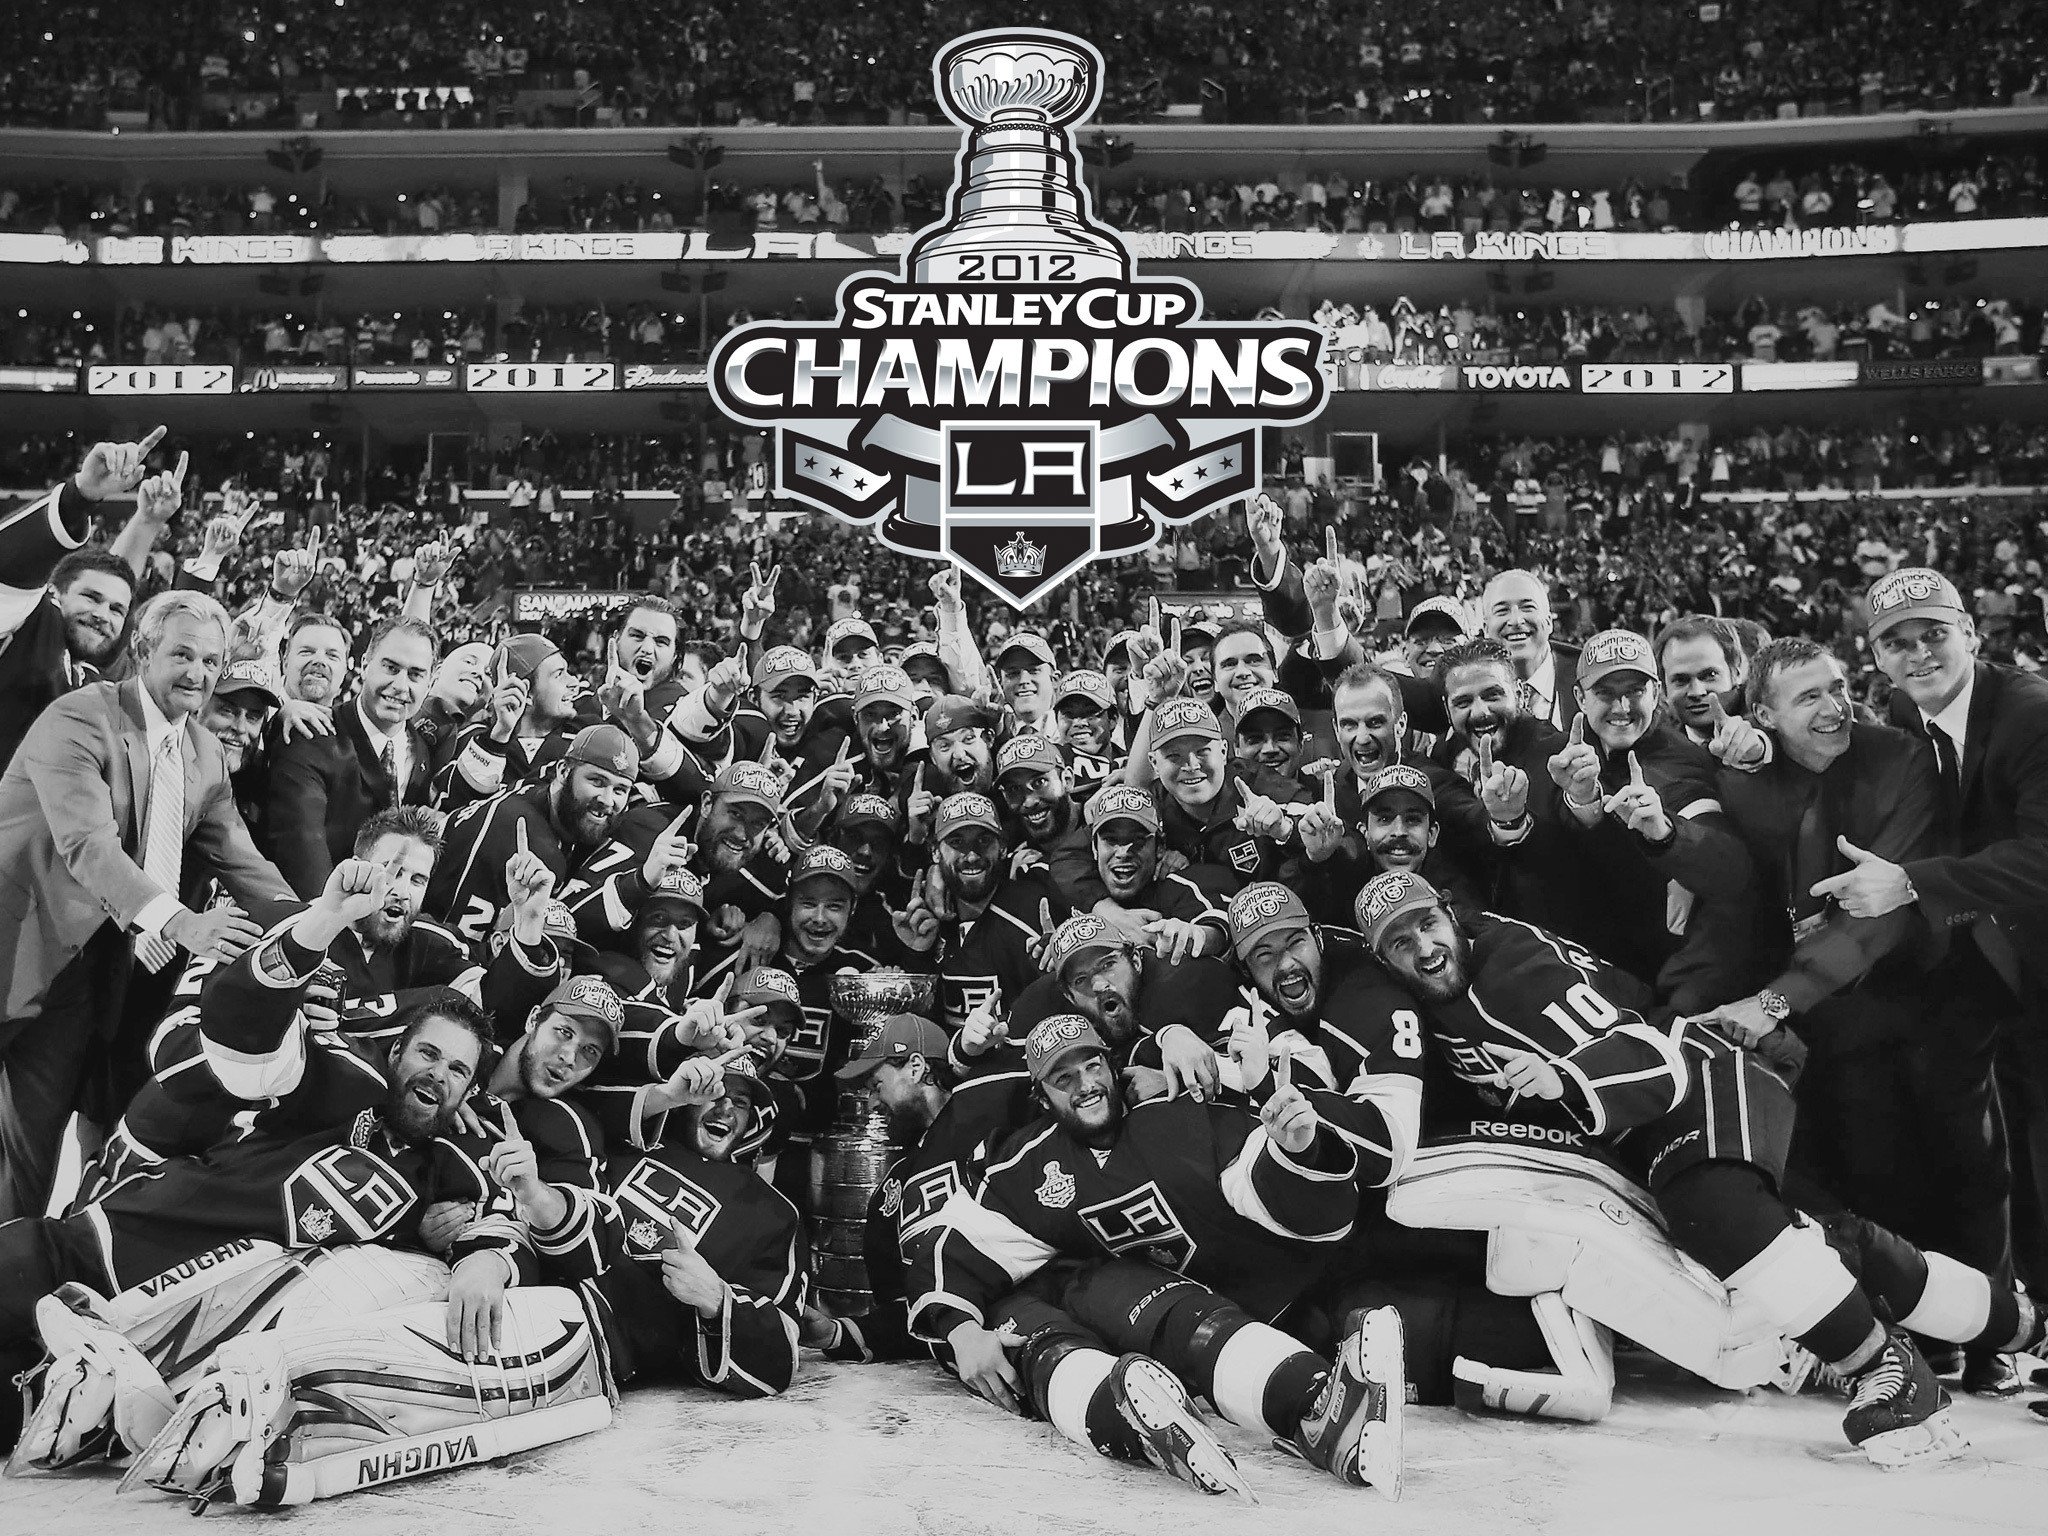 2048x1536 LA Kings Wallpaper for your iPad